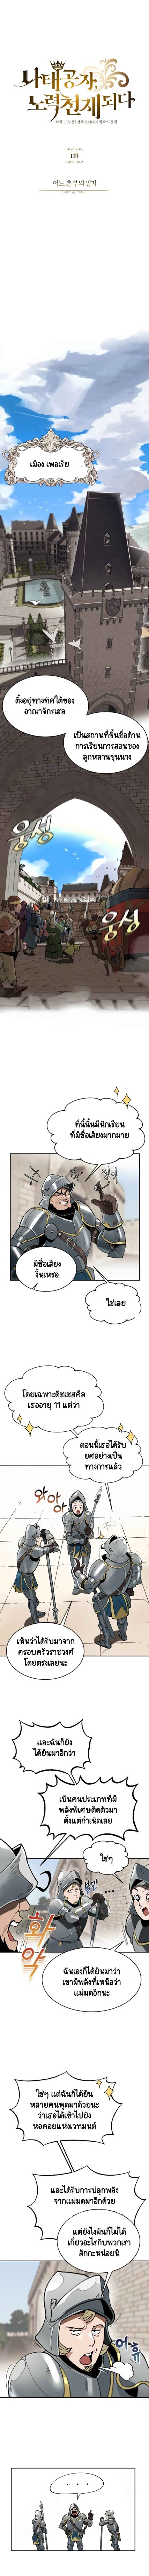 The Lazy Prince Becomes A Genius - หน้า 3